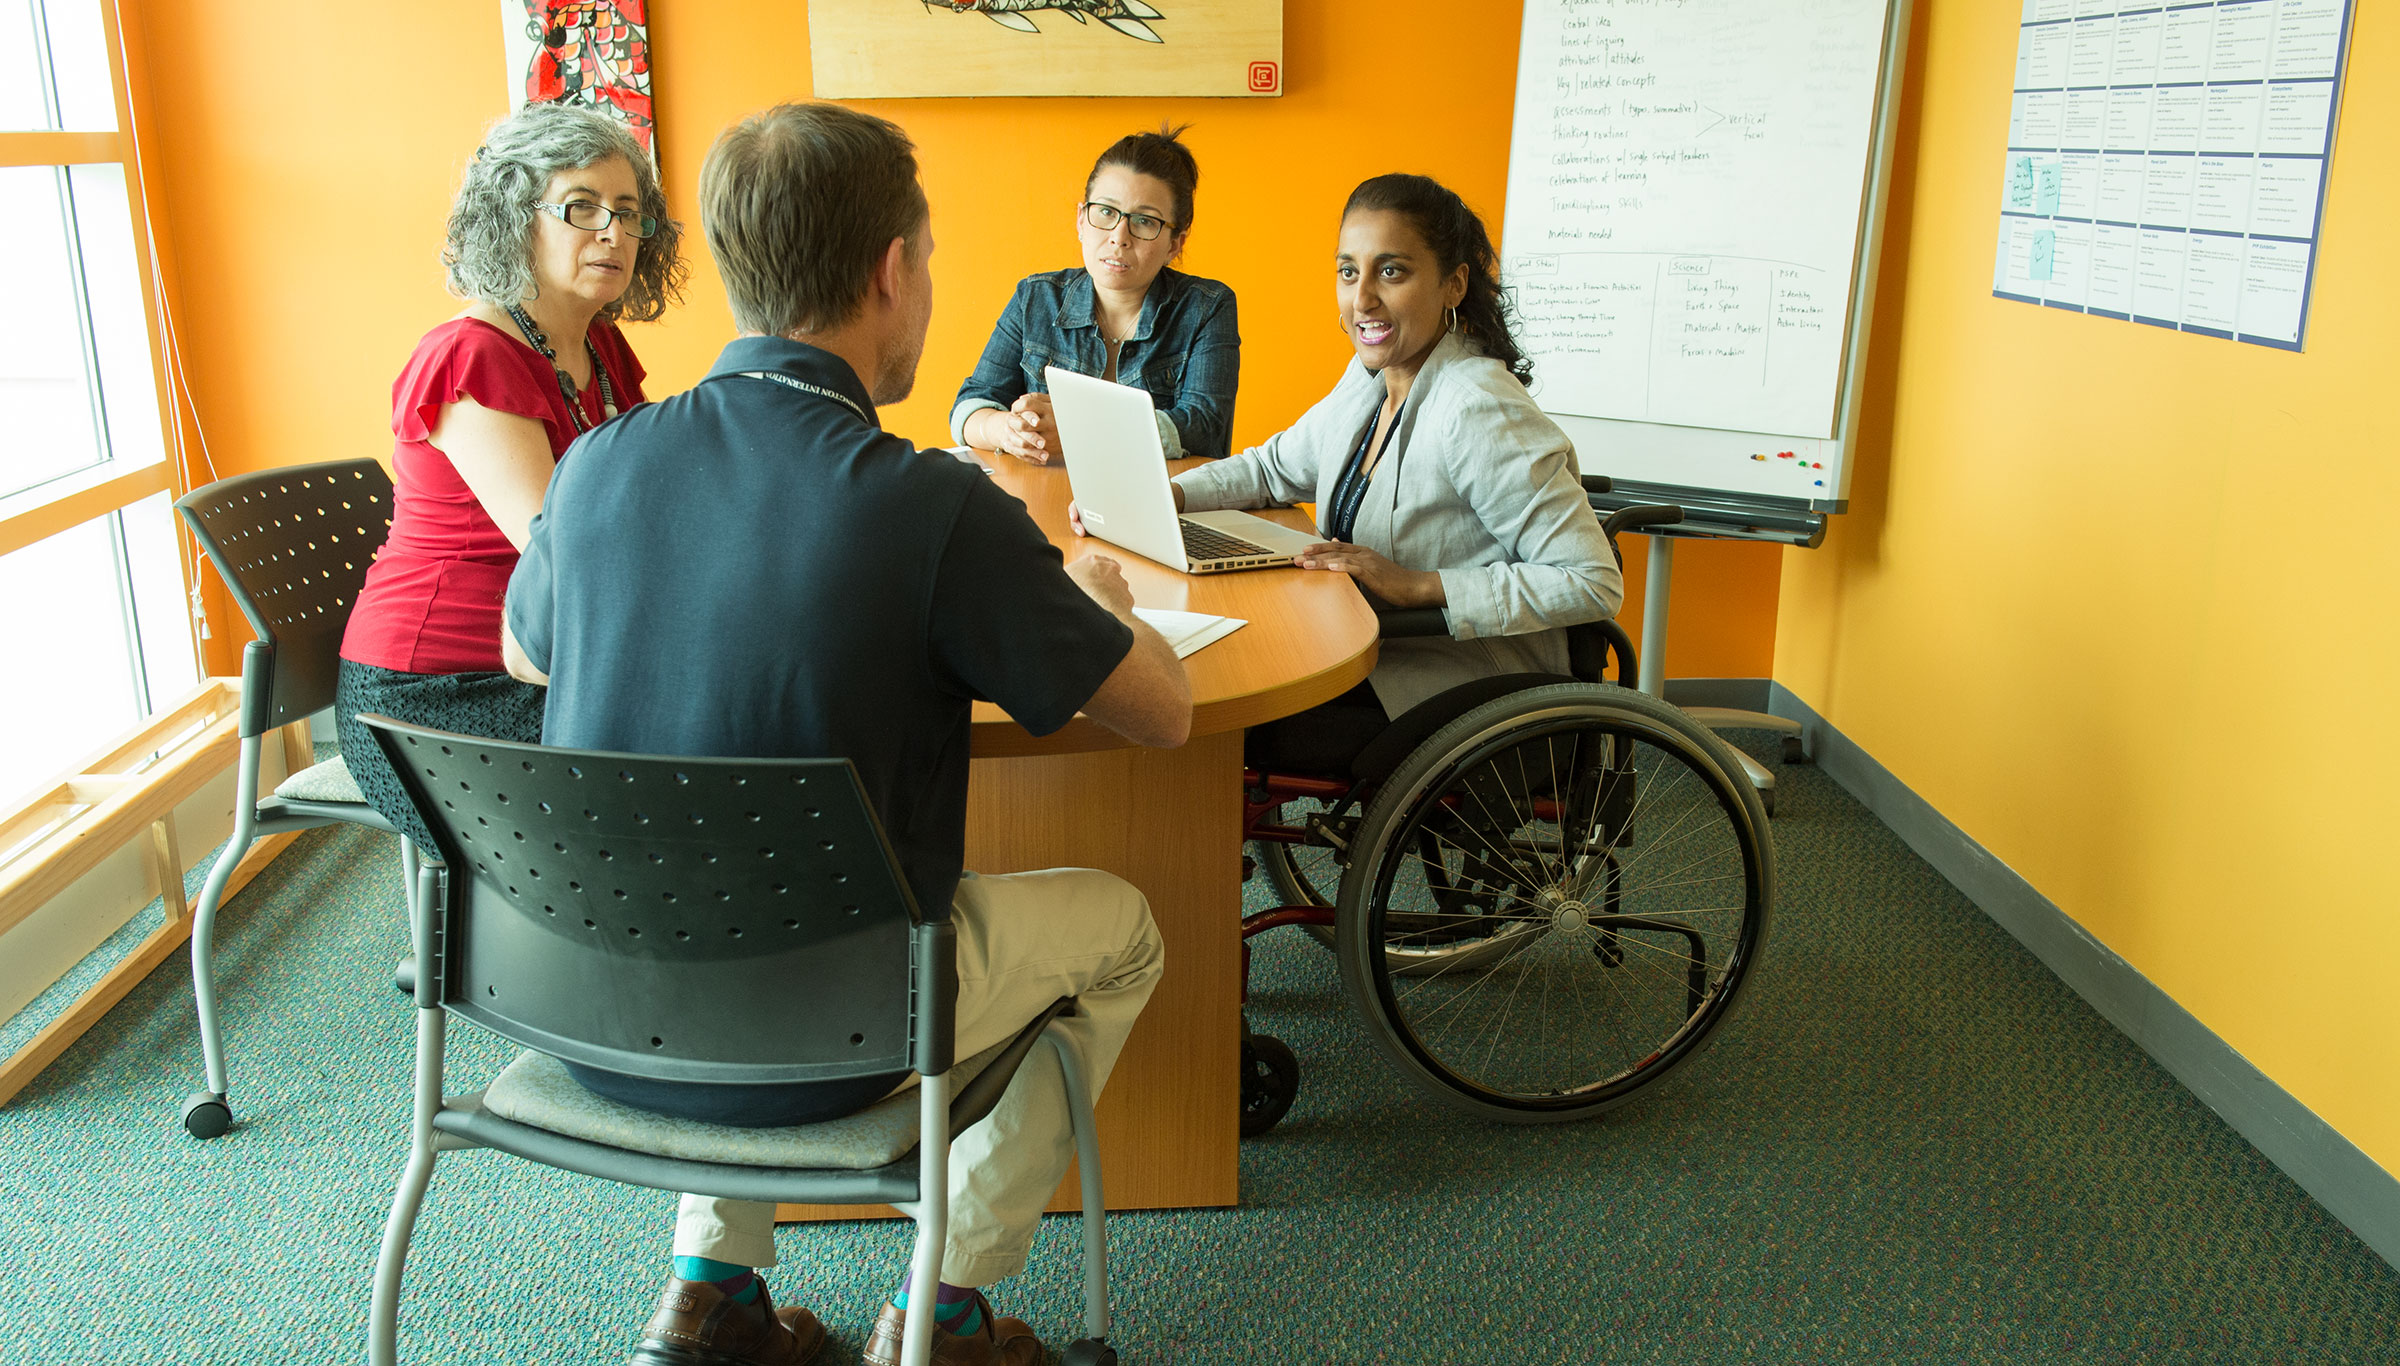 A photo of an inclusive workplace, with four men and women seated around a table in a conference room. One of the women is using a wheelchair.